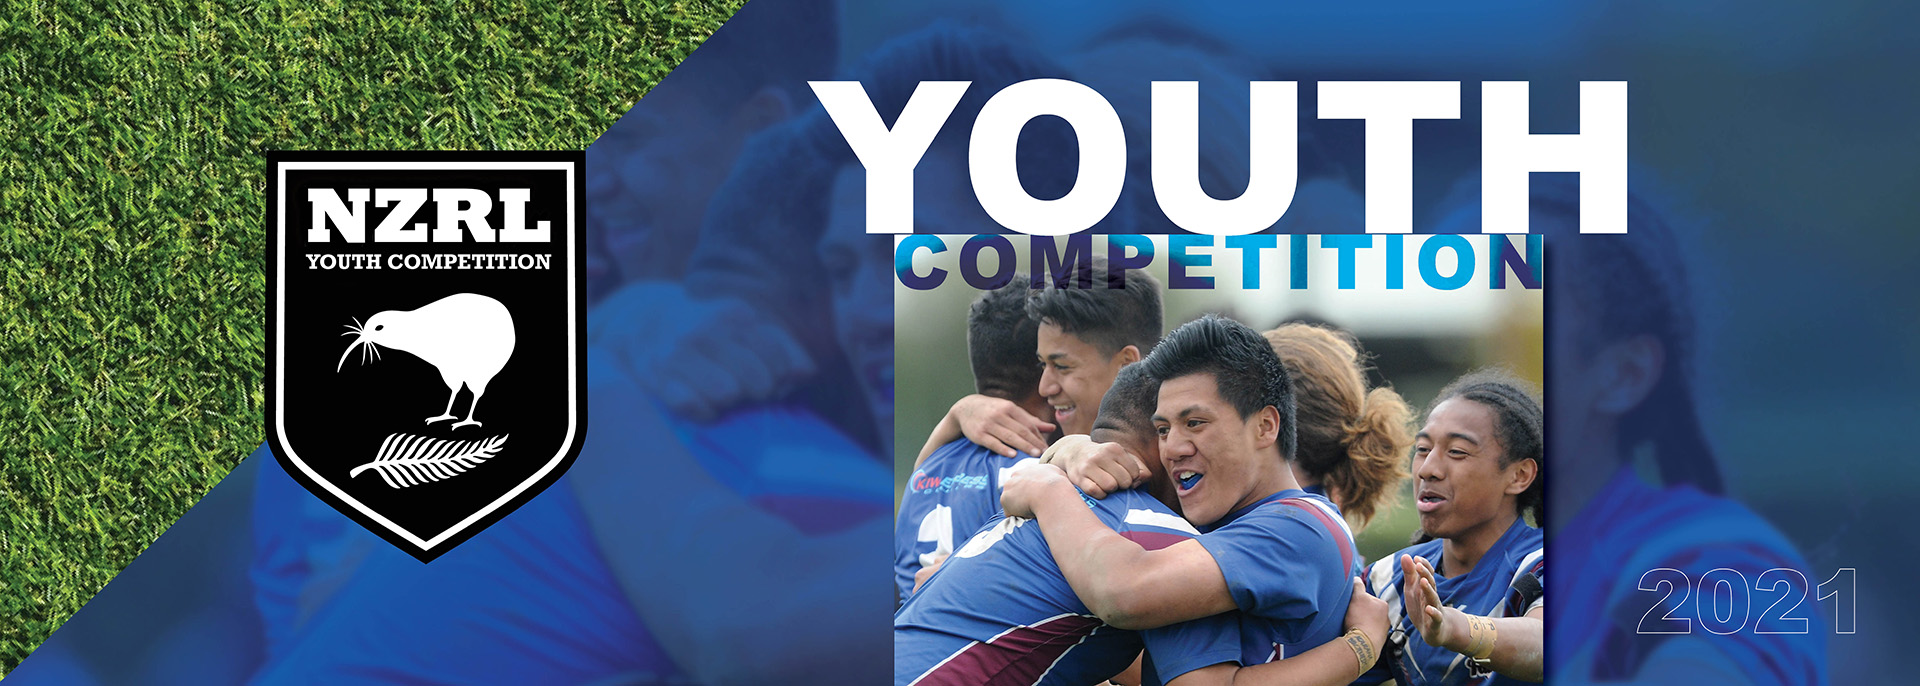 NZ national Youth Comp - You can watch replays of both matches below.